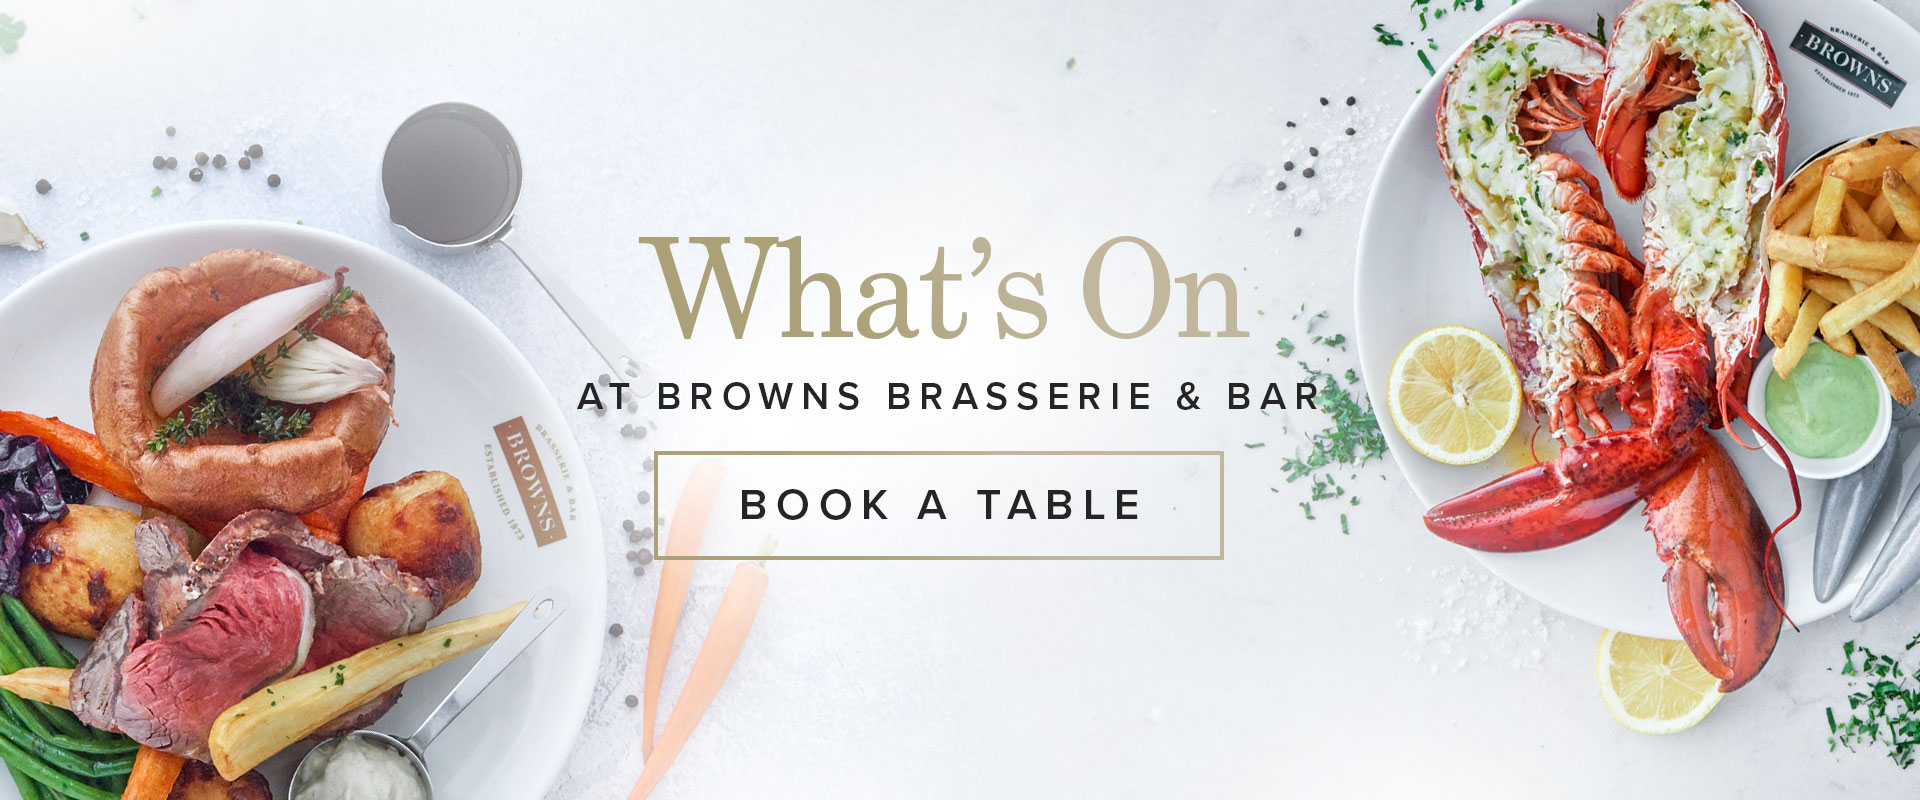 What's on at Browns Mayfair | Browns